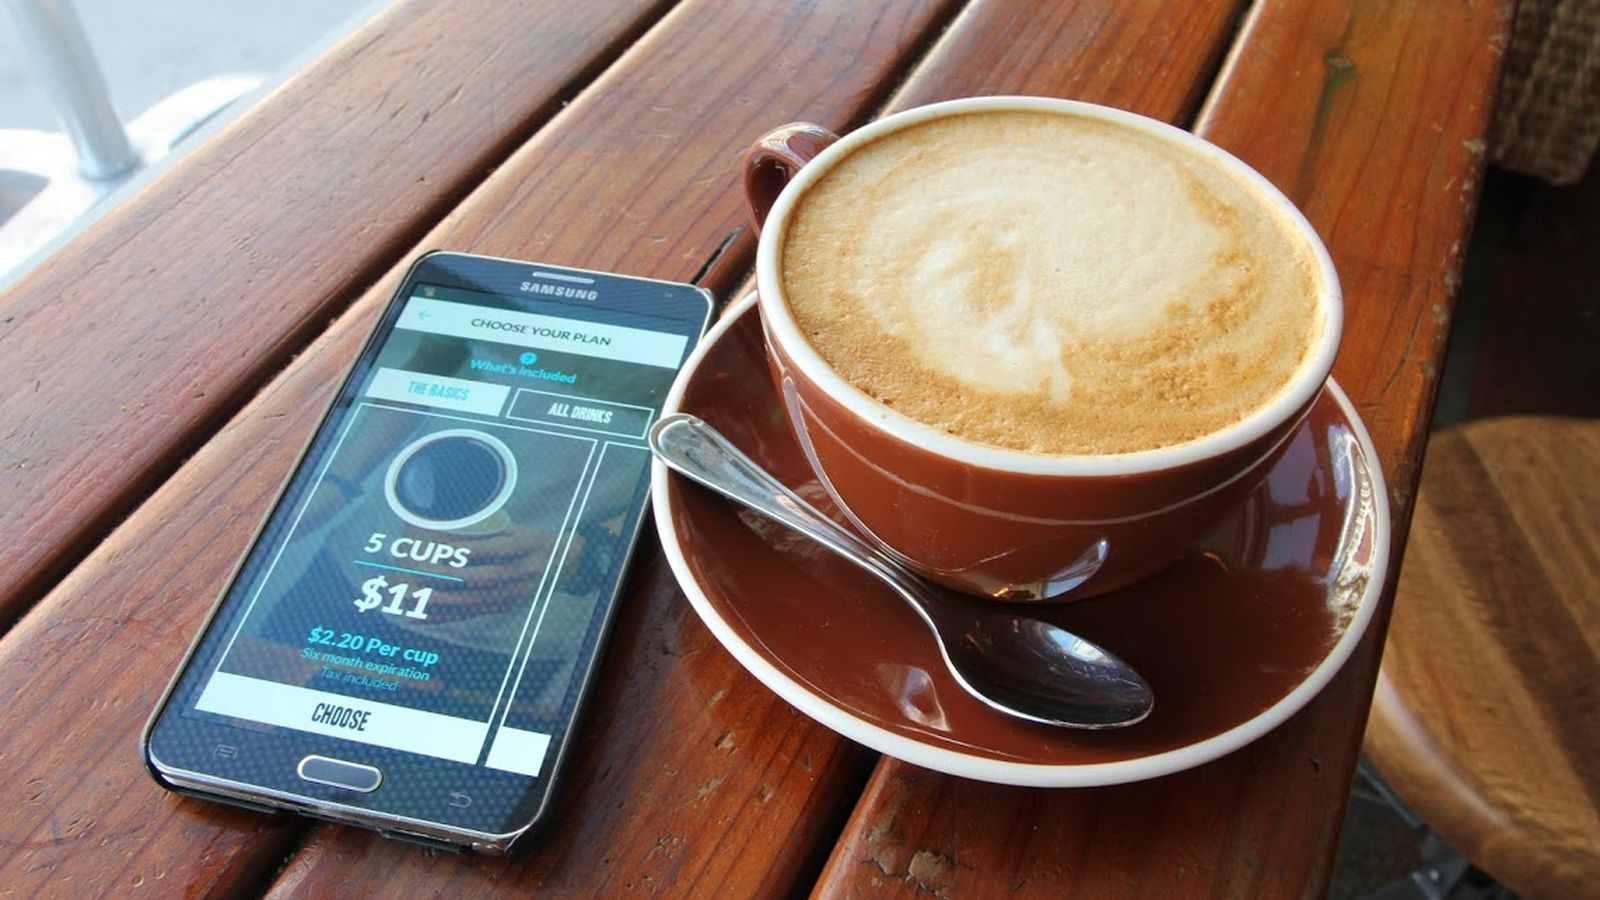 New Coffee App Launches in Caffeine Crazed SF